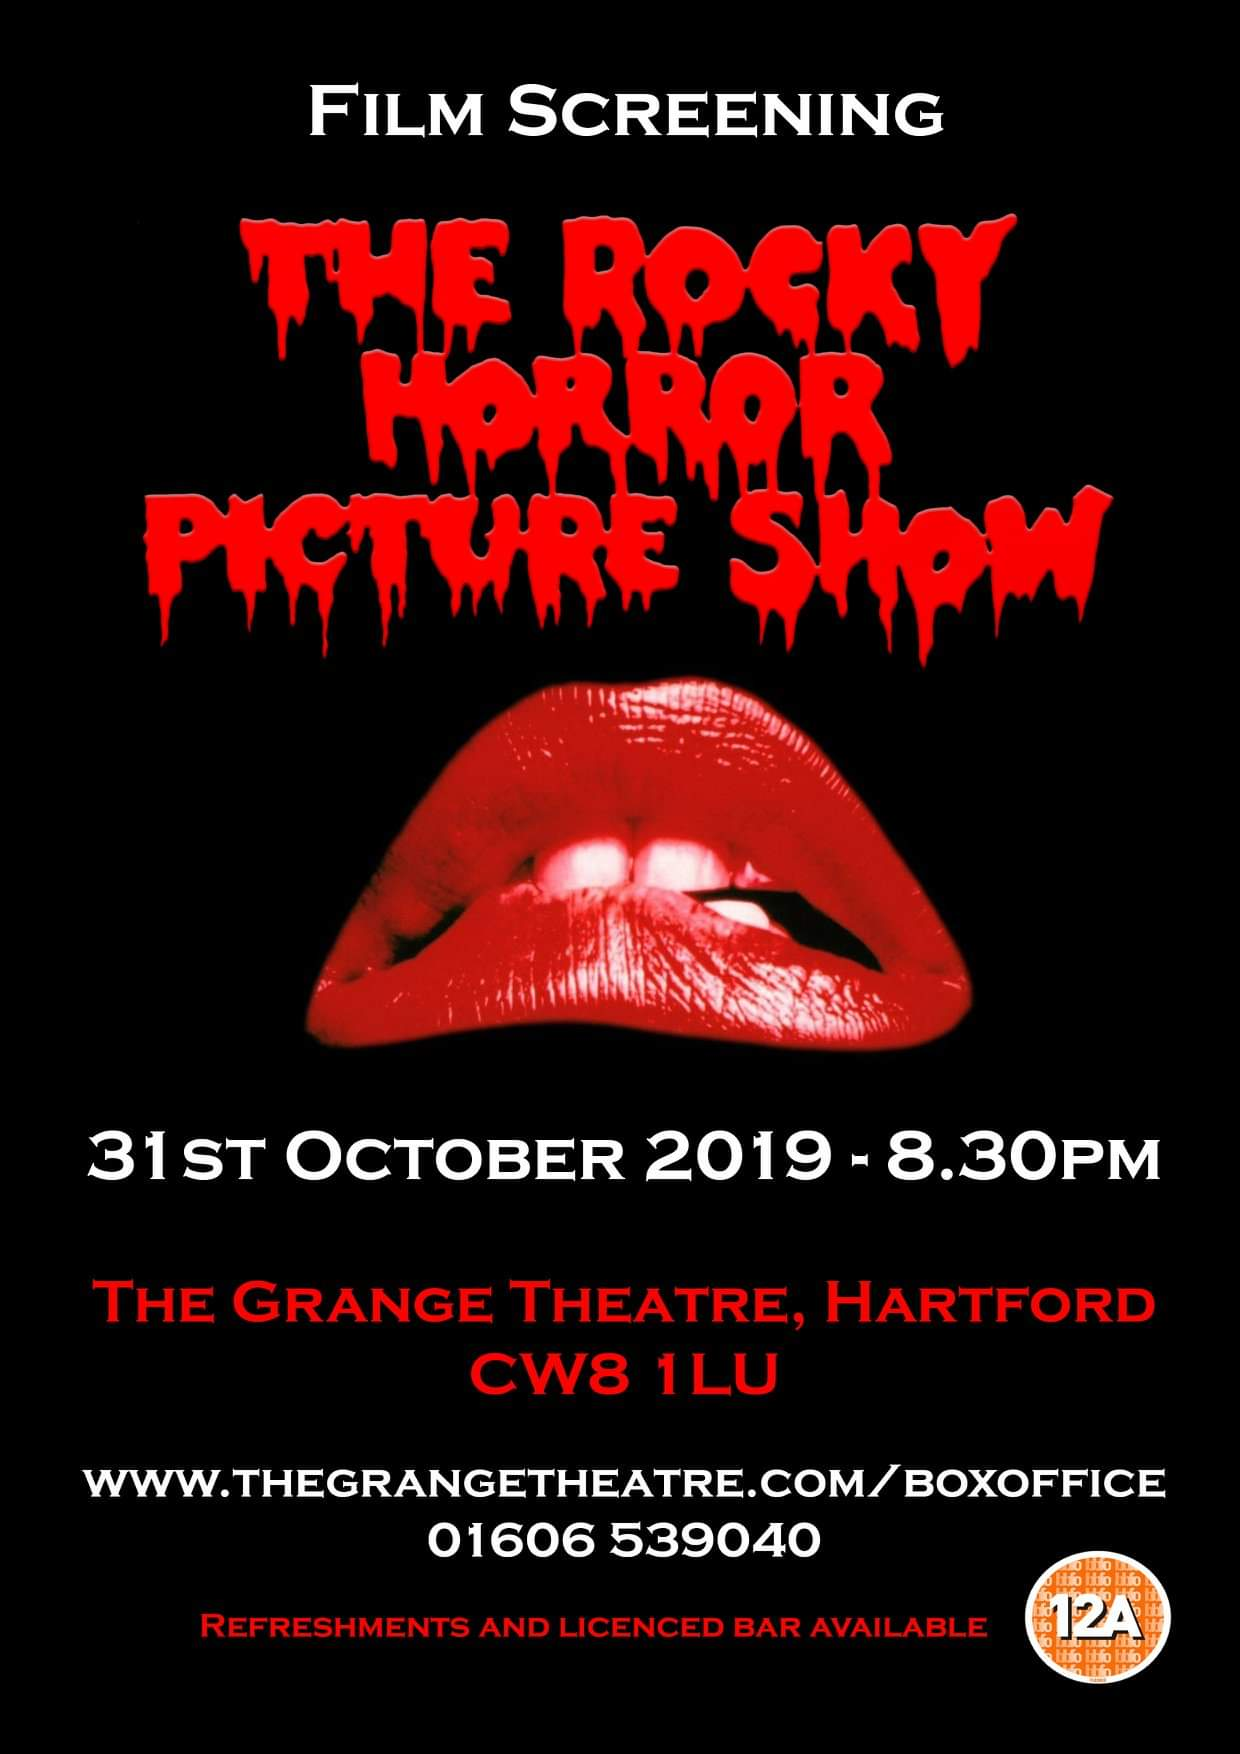 The Rocky Horror Picture Show - Film